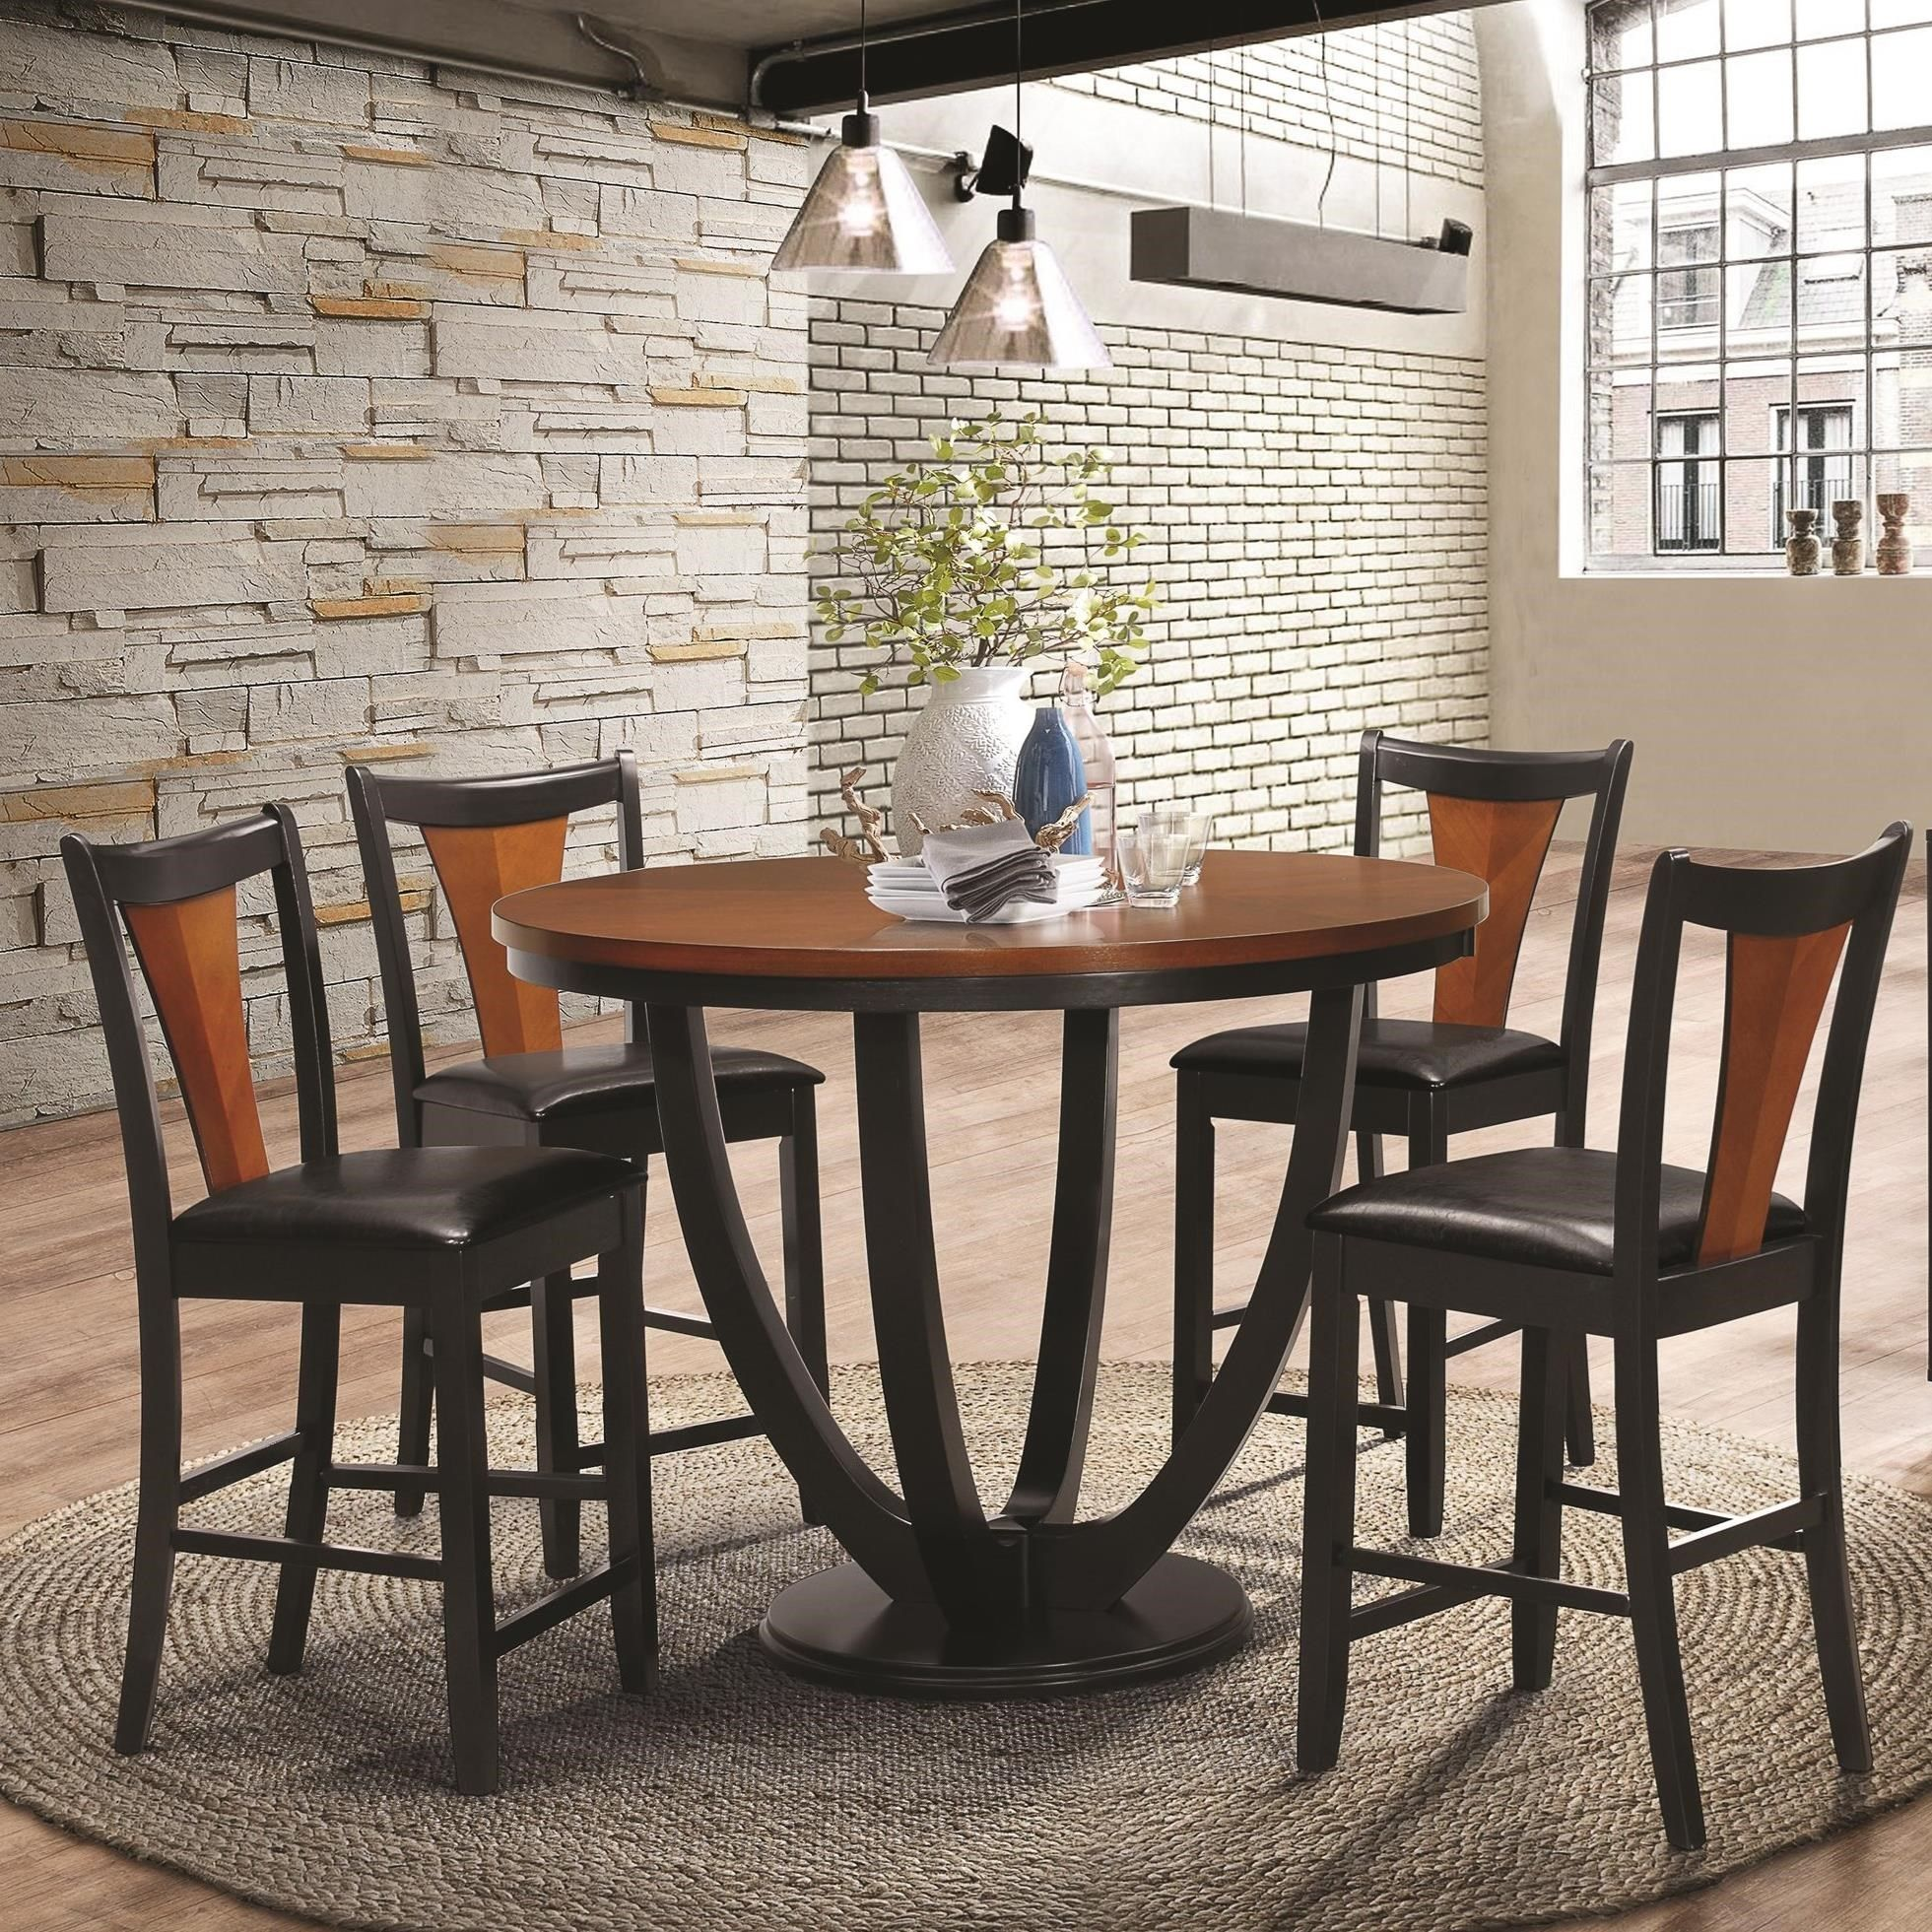 Boyer Contemporary 5 Piece Counter Height Table and Chair Set by Coaster